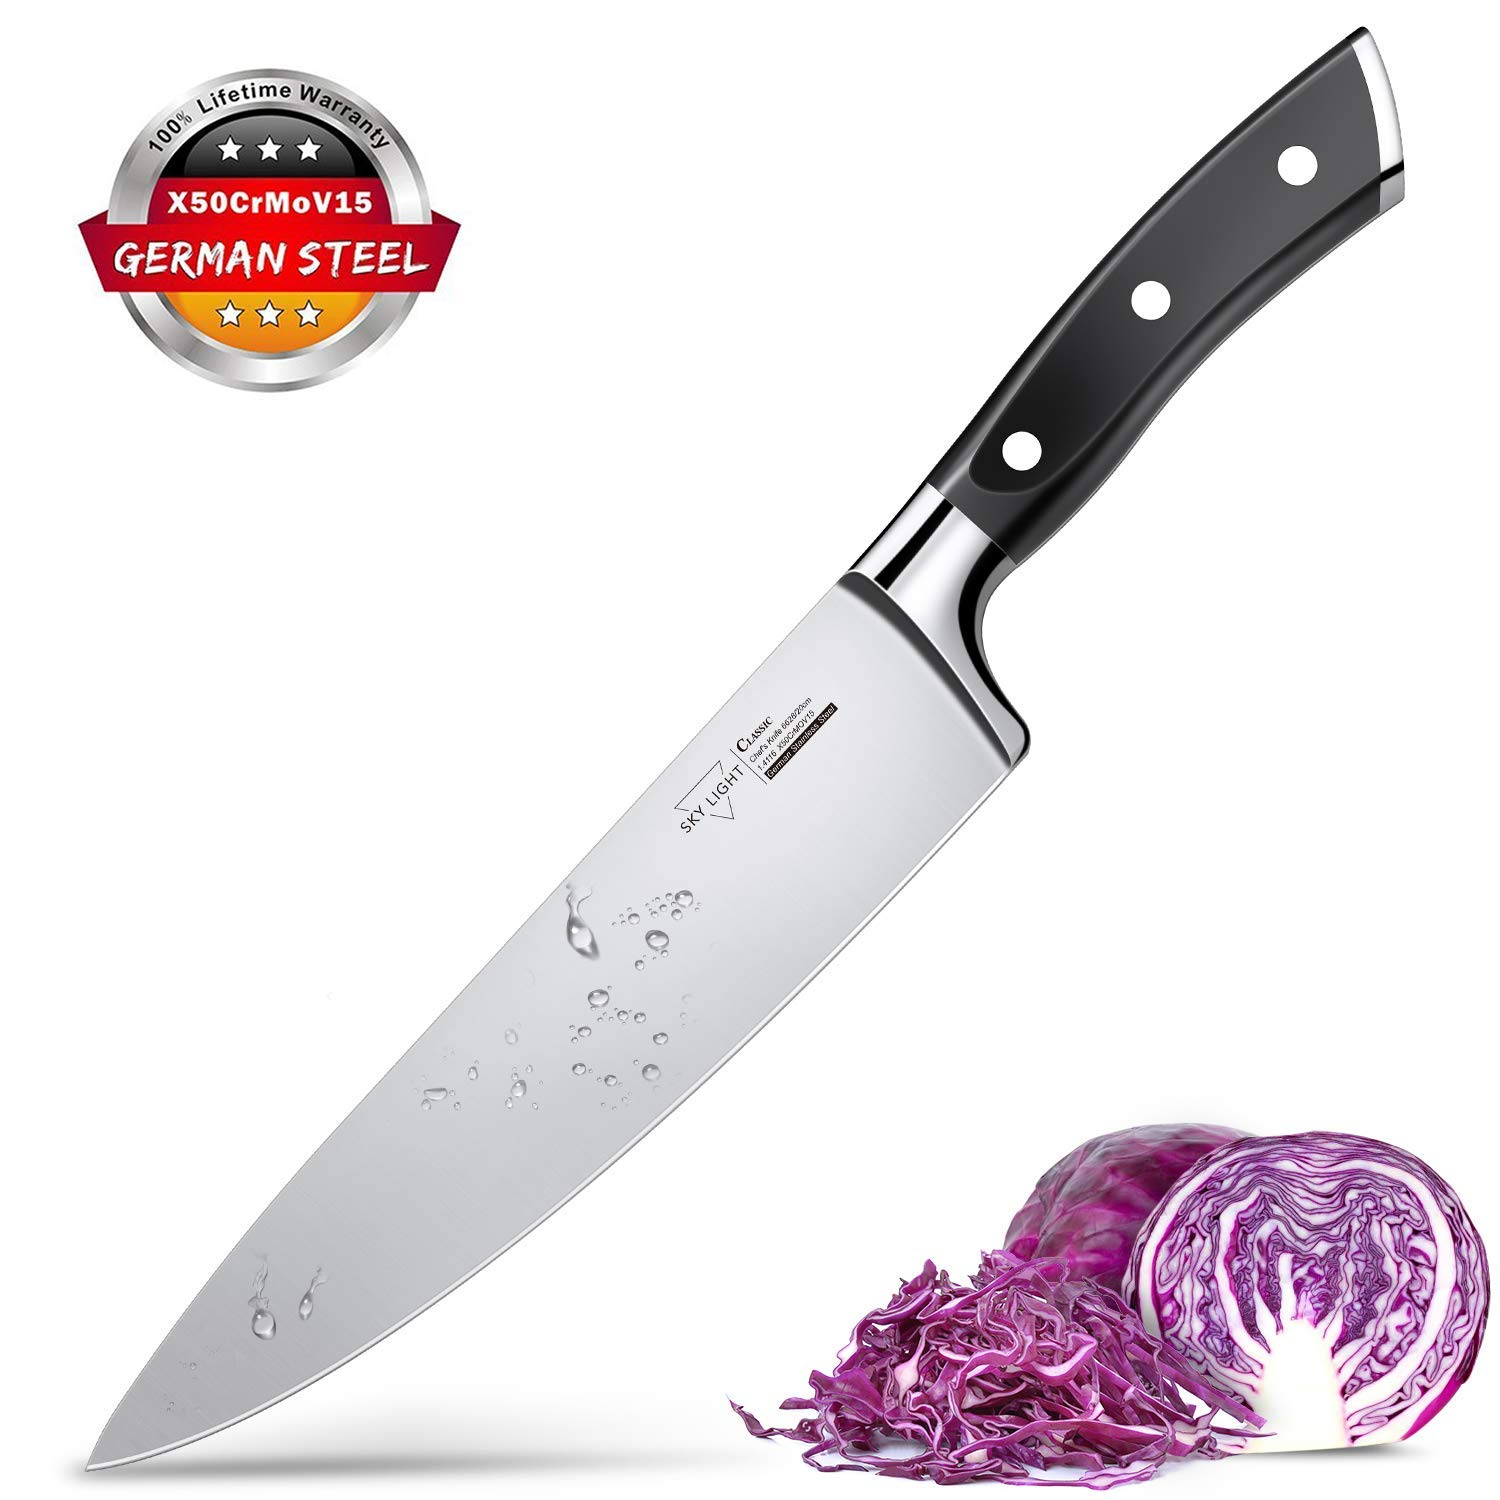 Chef Knife, Kitchen Knife 8 Inch Home Pro Cooking Chopper Knives High Carbon German Stainless Steel Ultra Sharp Blade with Ergonomic Handle